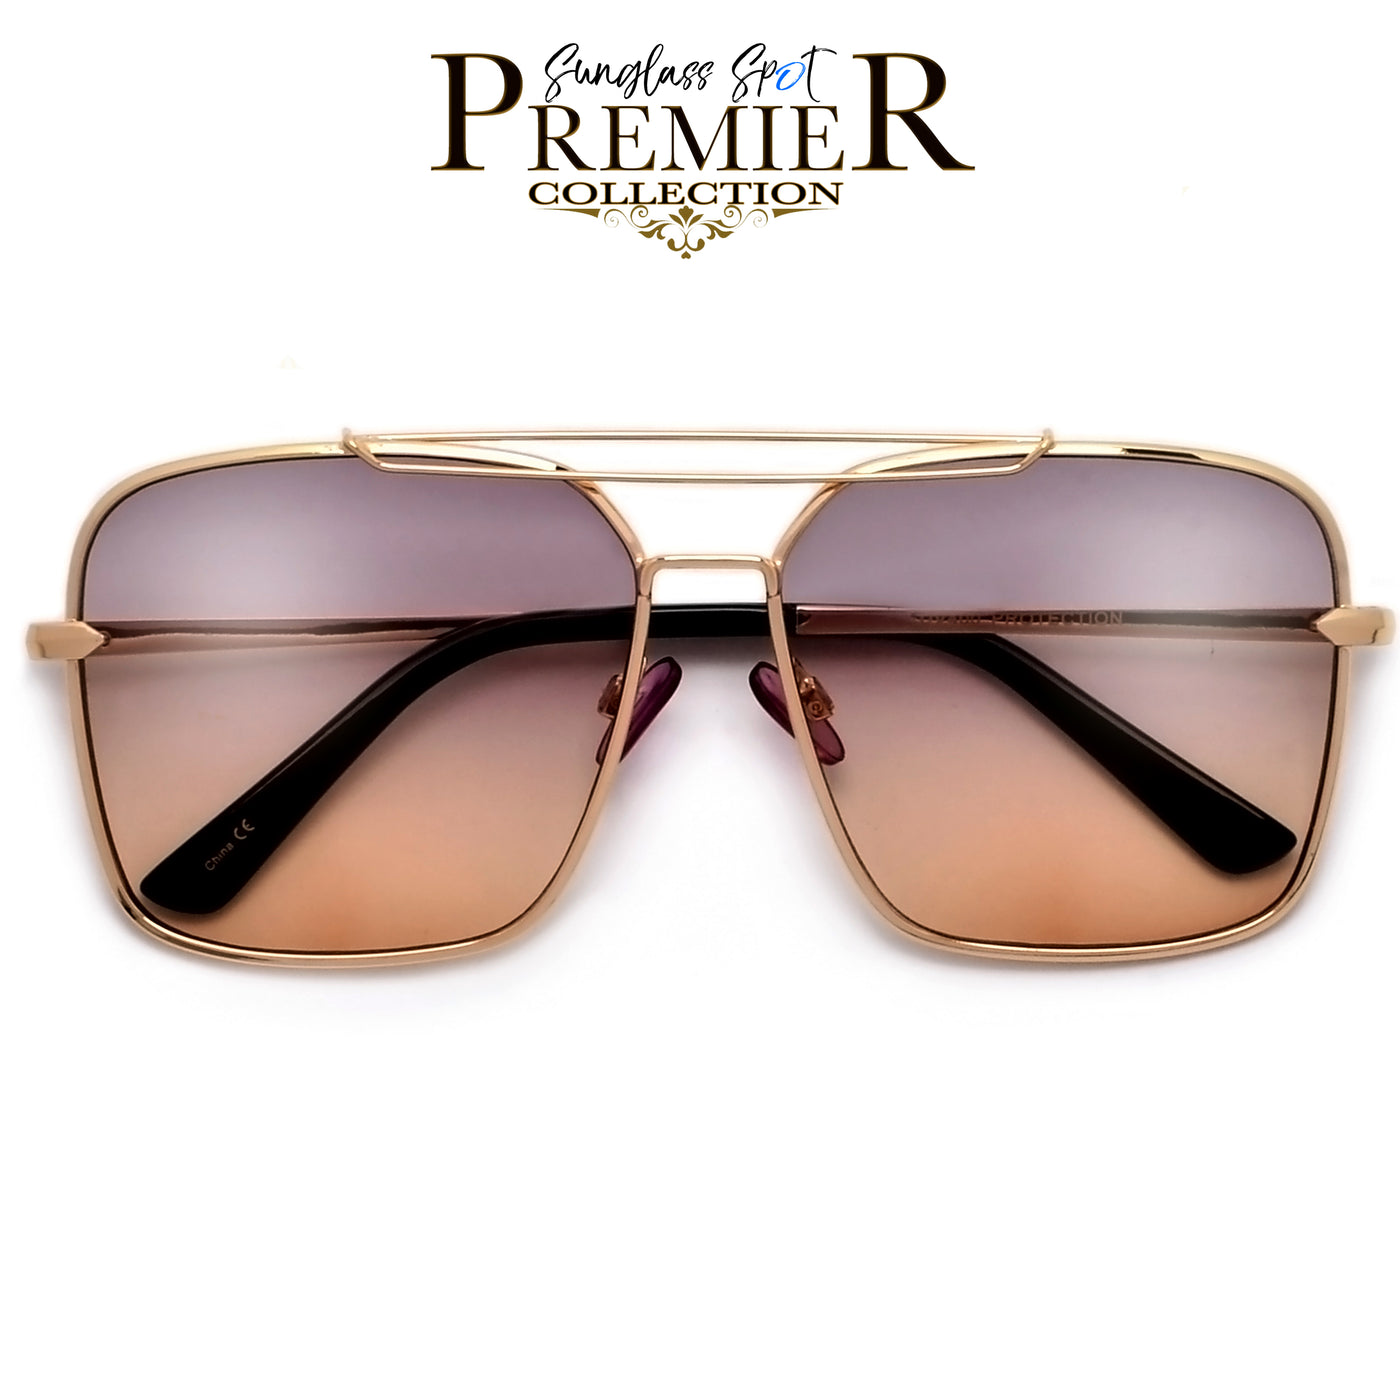 e2c3ebf44a2 PREMIER COLLECTION-OVERSIZE SLEEK MODERN DOUBLE BROW BAR AVIATOR SUNGLASSES